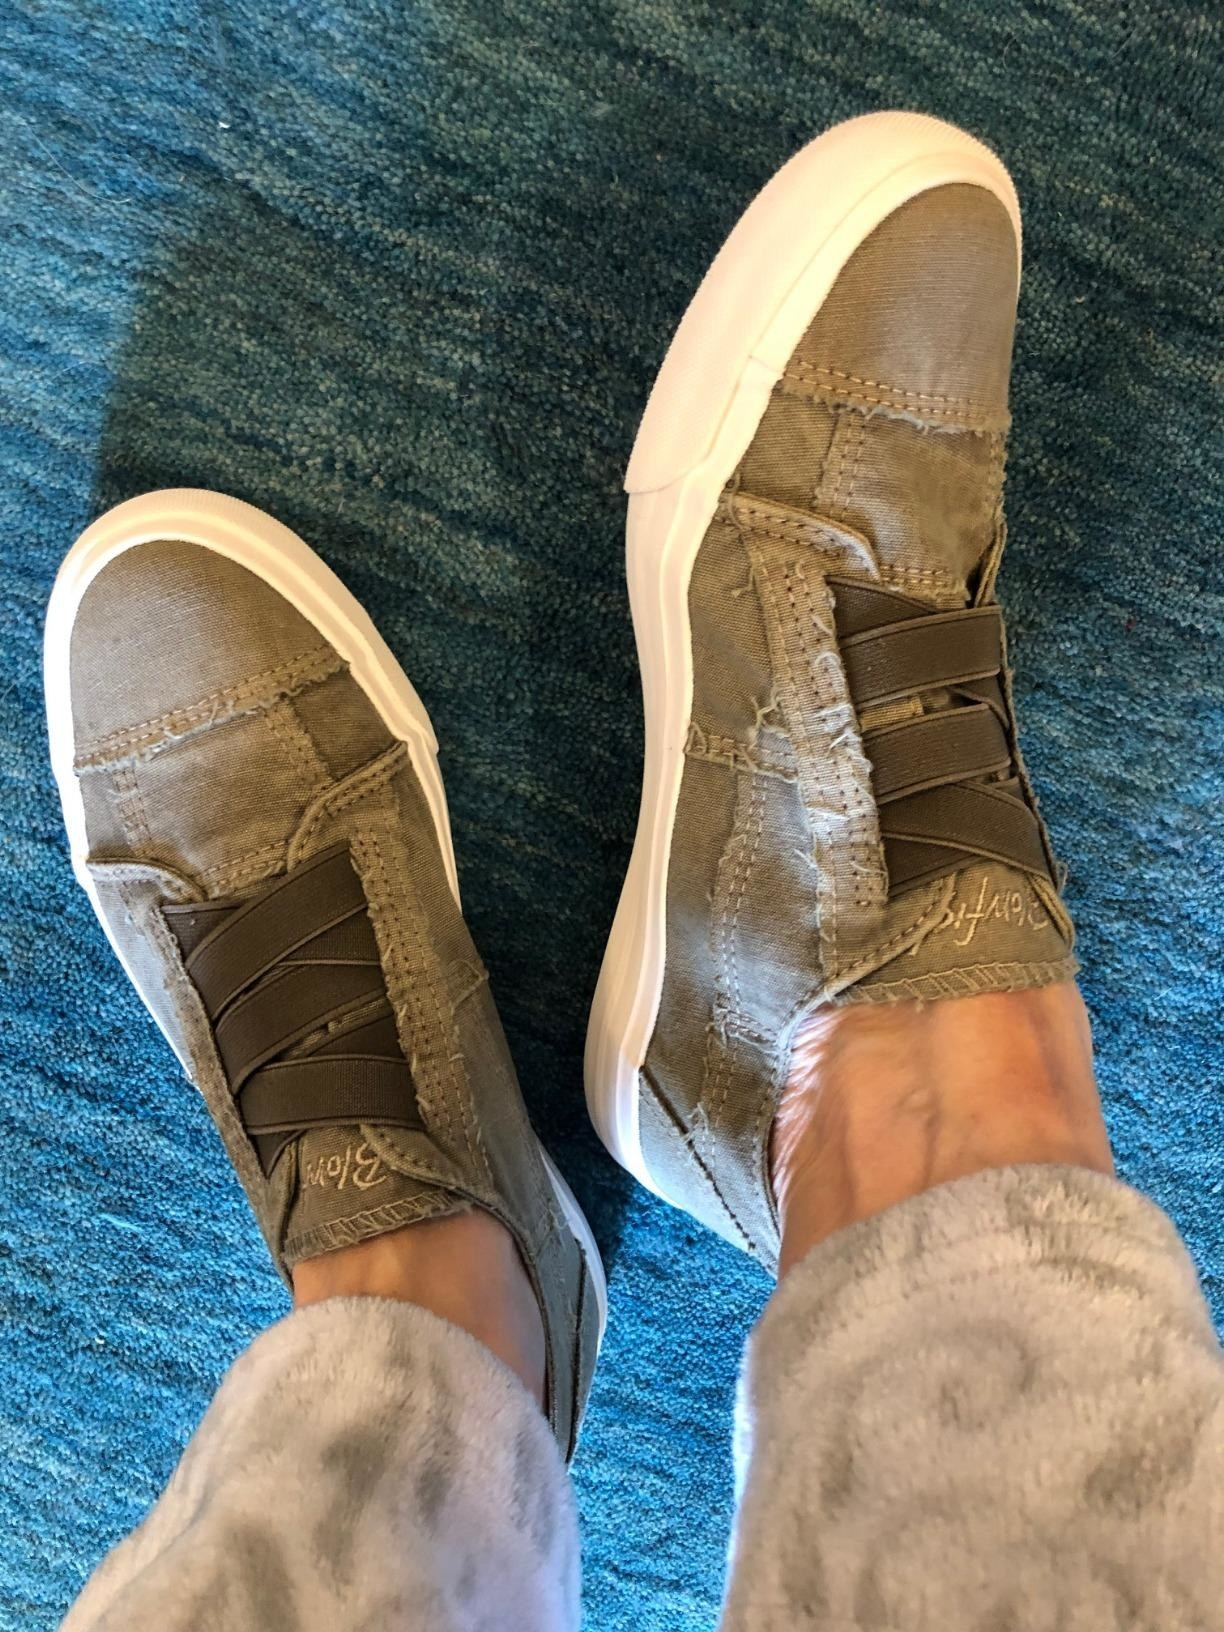 reviewer wearing grey/green sneakers with elastic detail